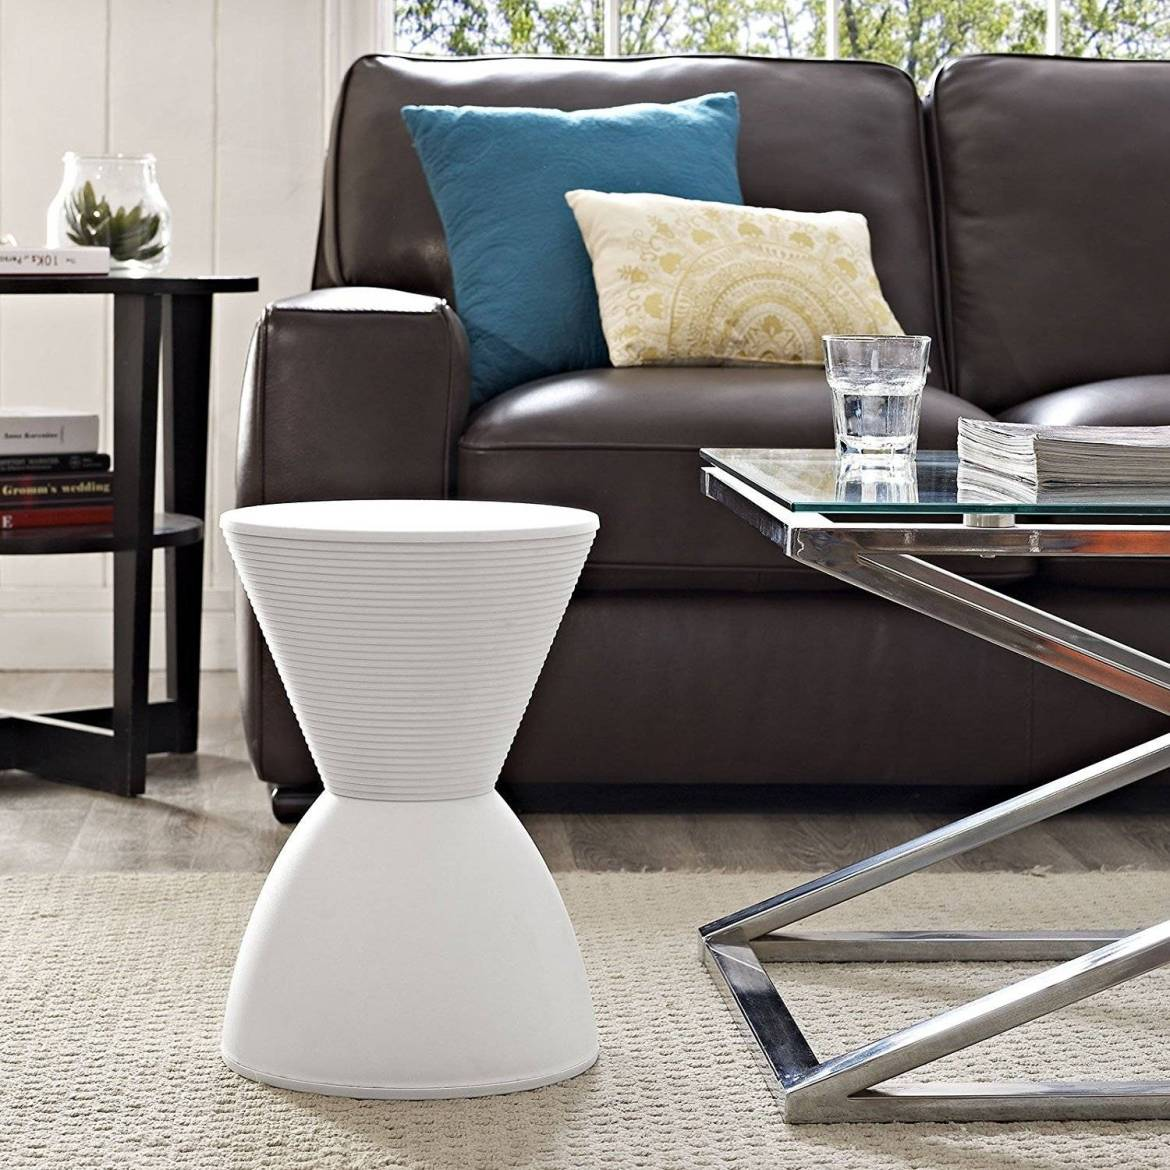 Modern hourglass accent stool from Amazon